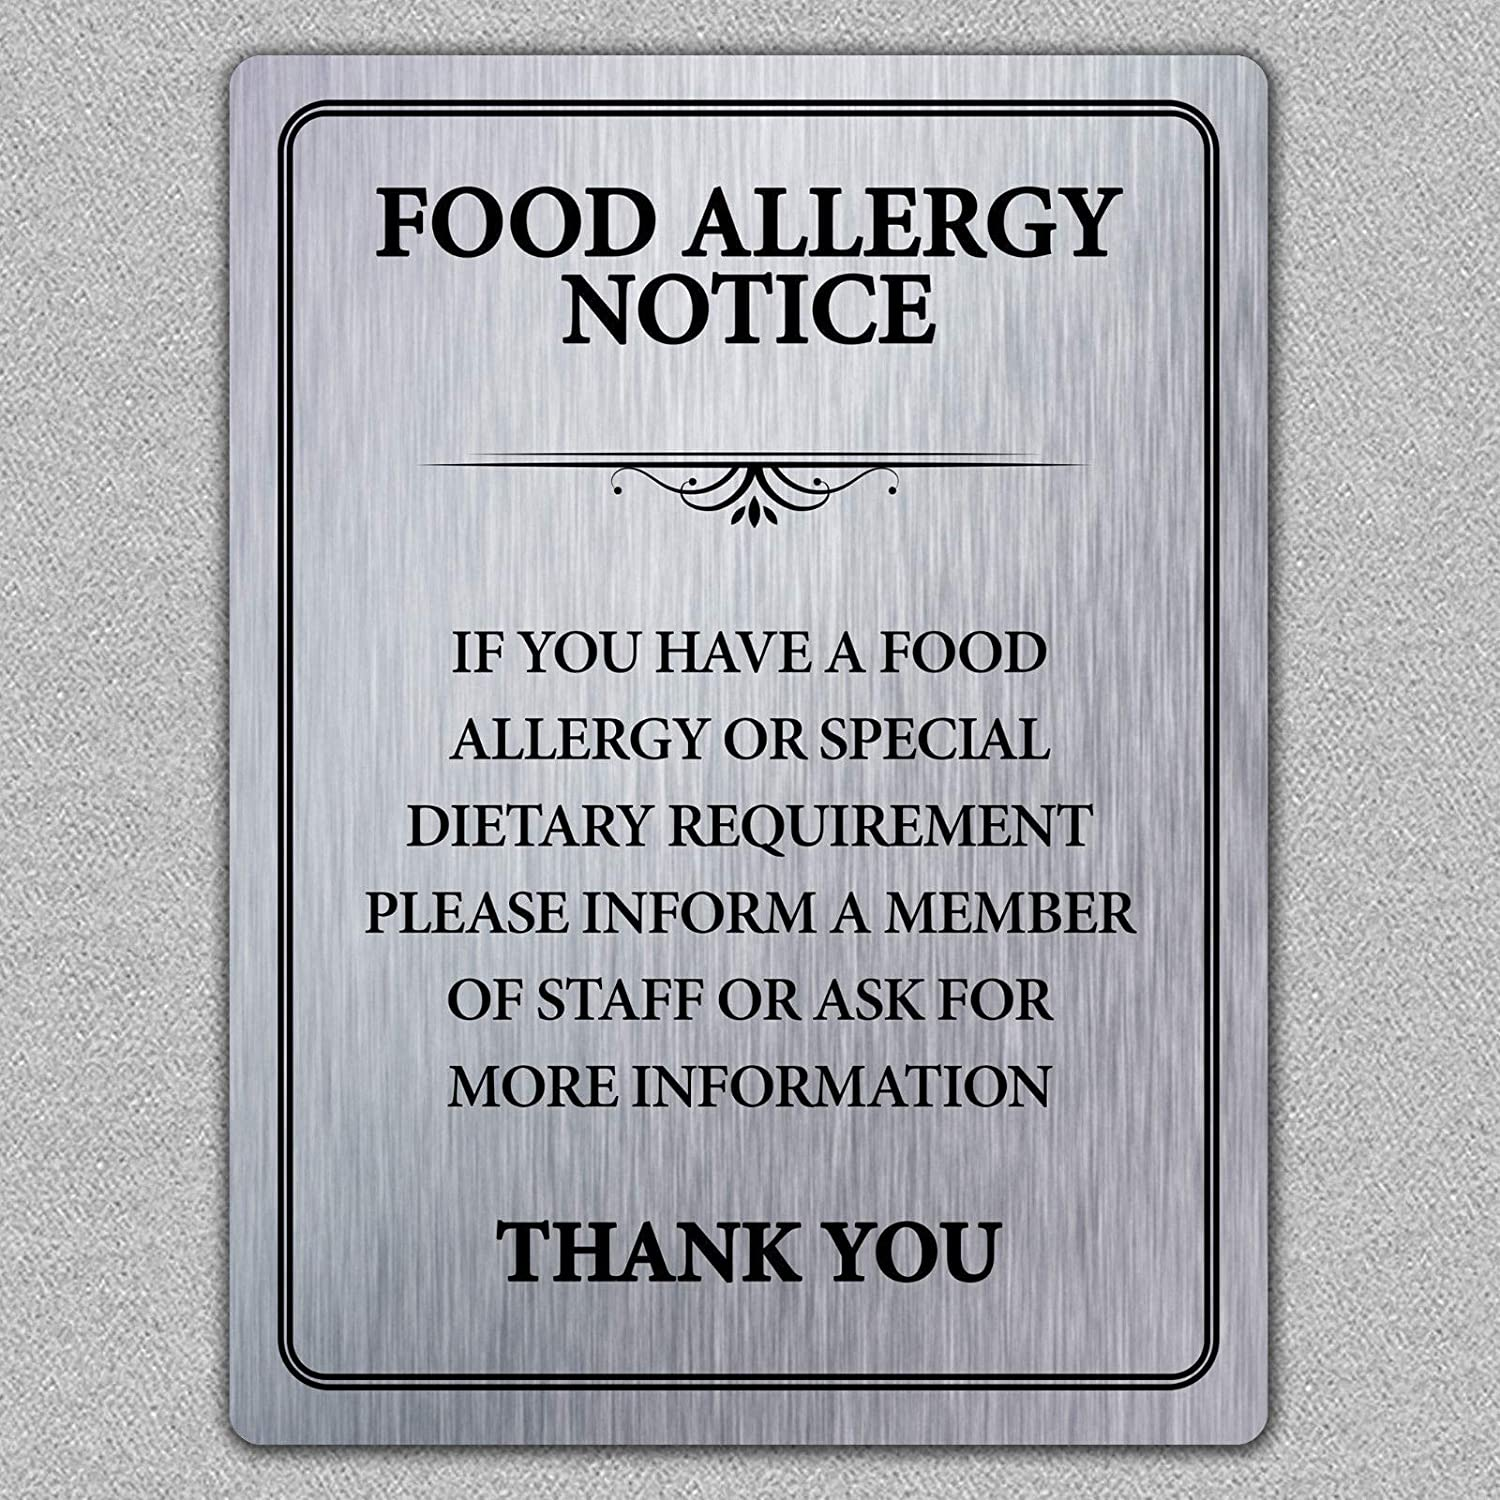 Food Allergy Store Safety Notice Tin Sign Metal TIN 7.8X11.8 Super sale